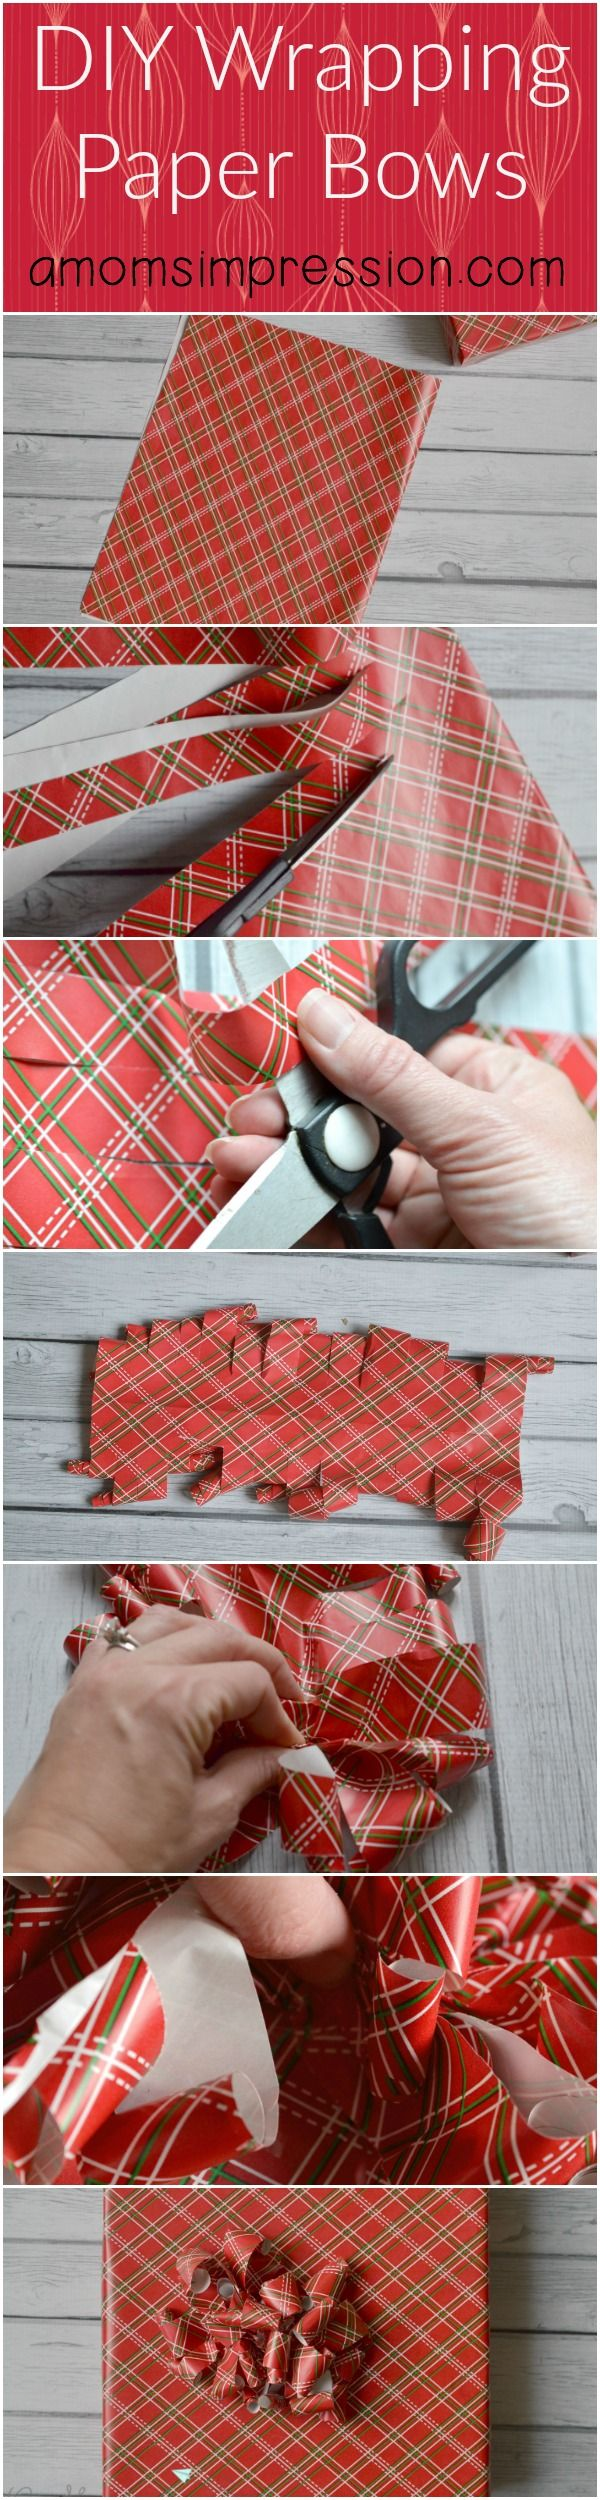 DIY Wrapping Paper Bows an easy and quick tutorial on how to make fabulous bows out of any wrapping paper. Perfect for holiday gifts.